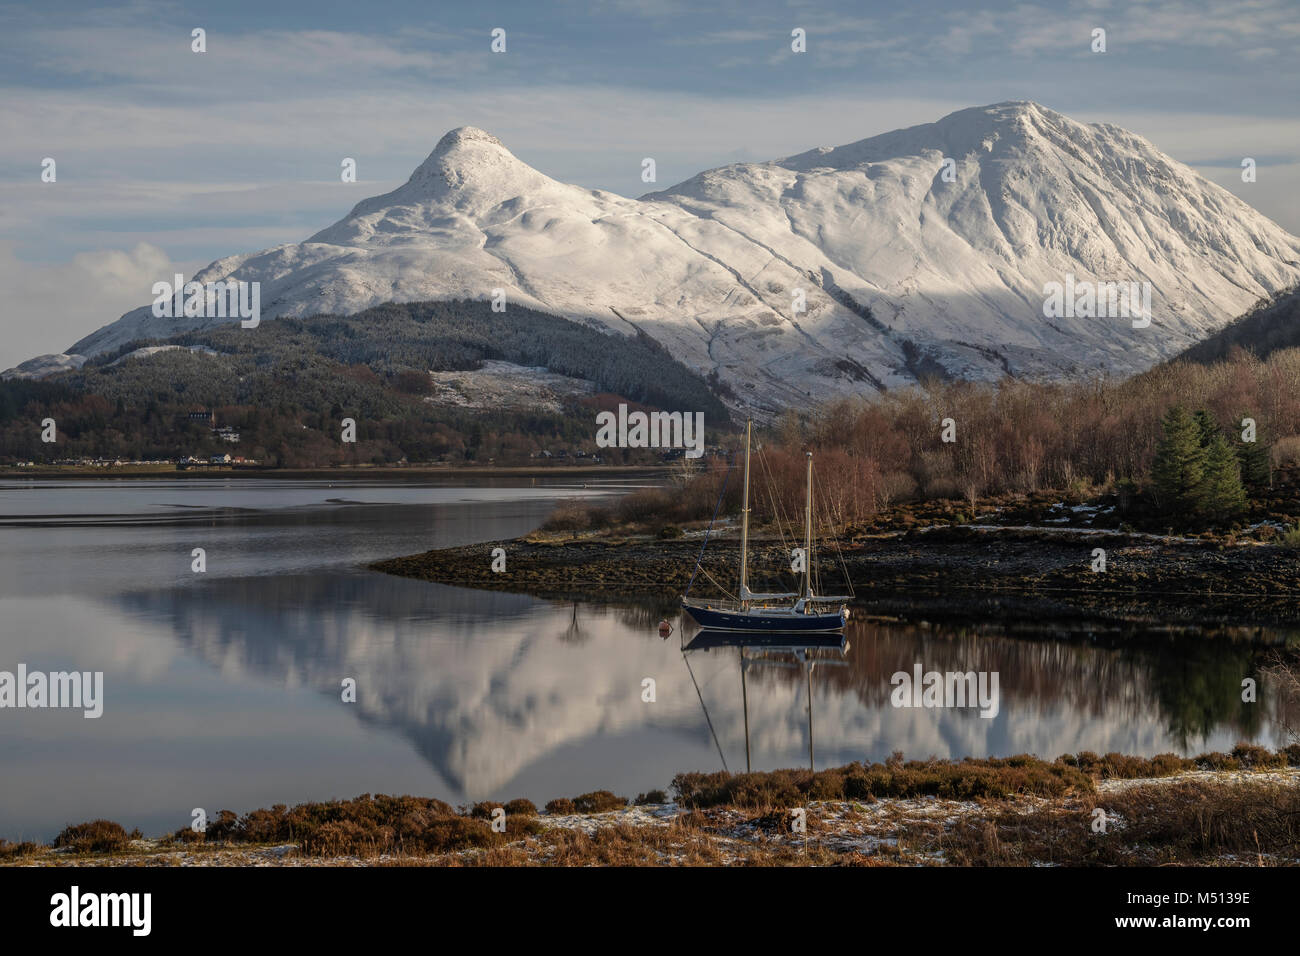 Loch Leven, Ballachulish, Highlands, Scotland, United Kingdom - Stock Image